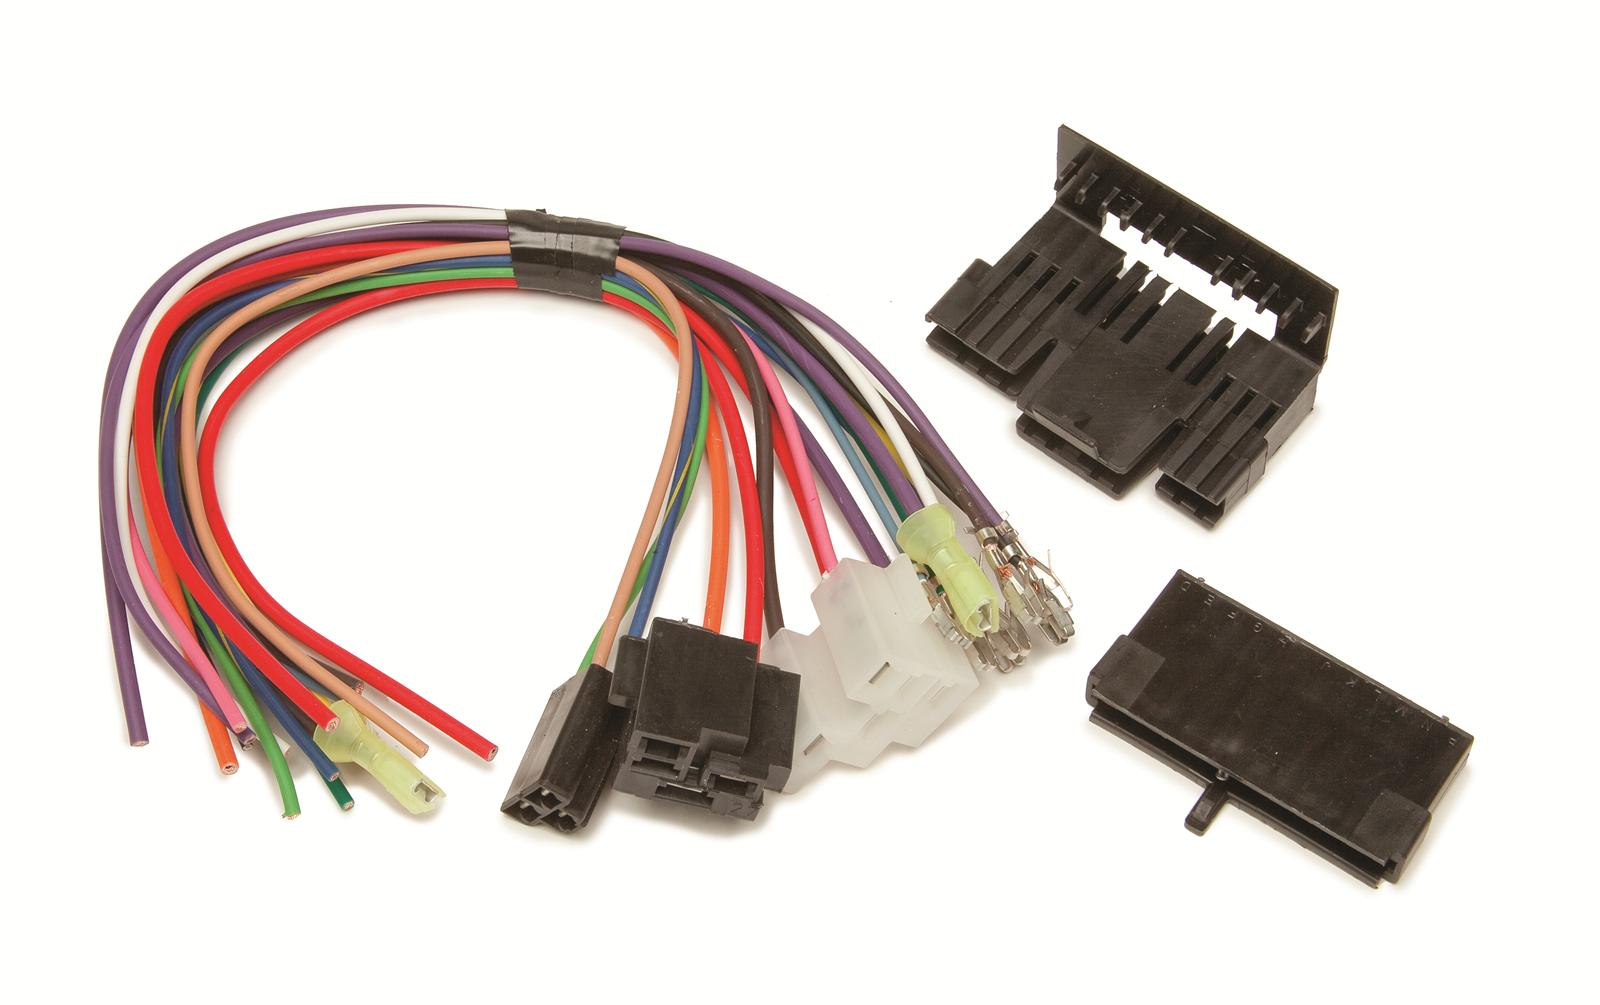 gm vehicle cruise control wiring pigtails painless performance gm steering column with dimmer ...